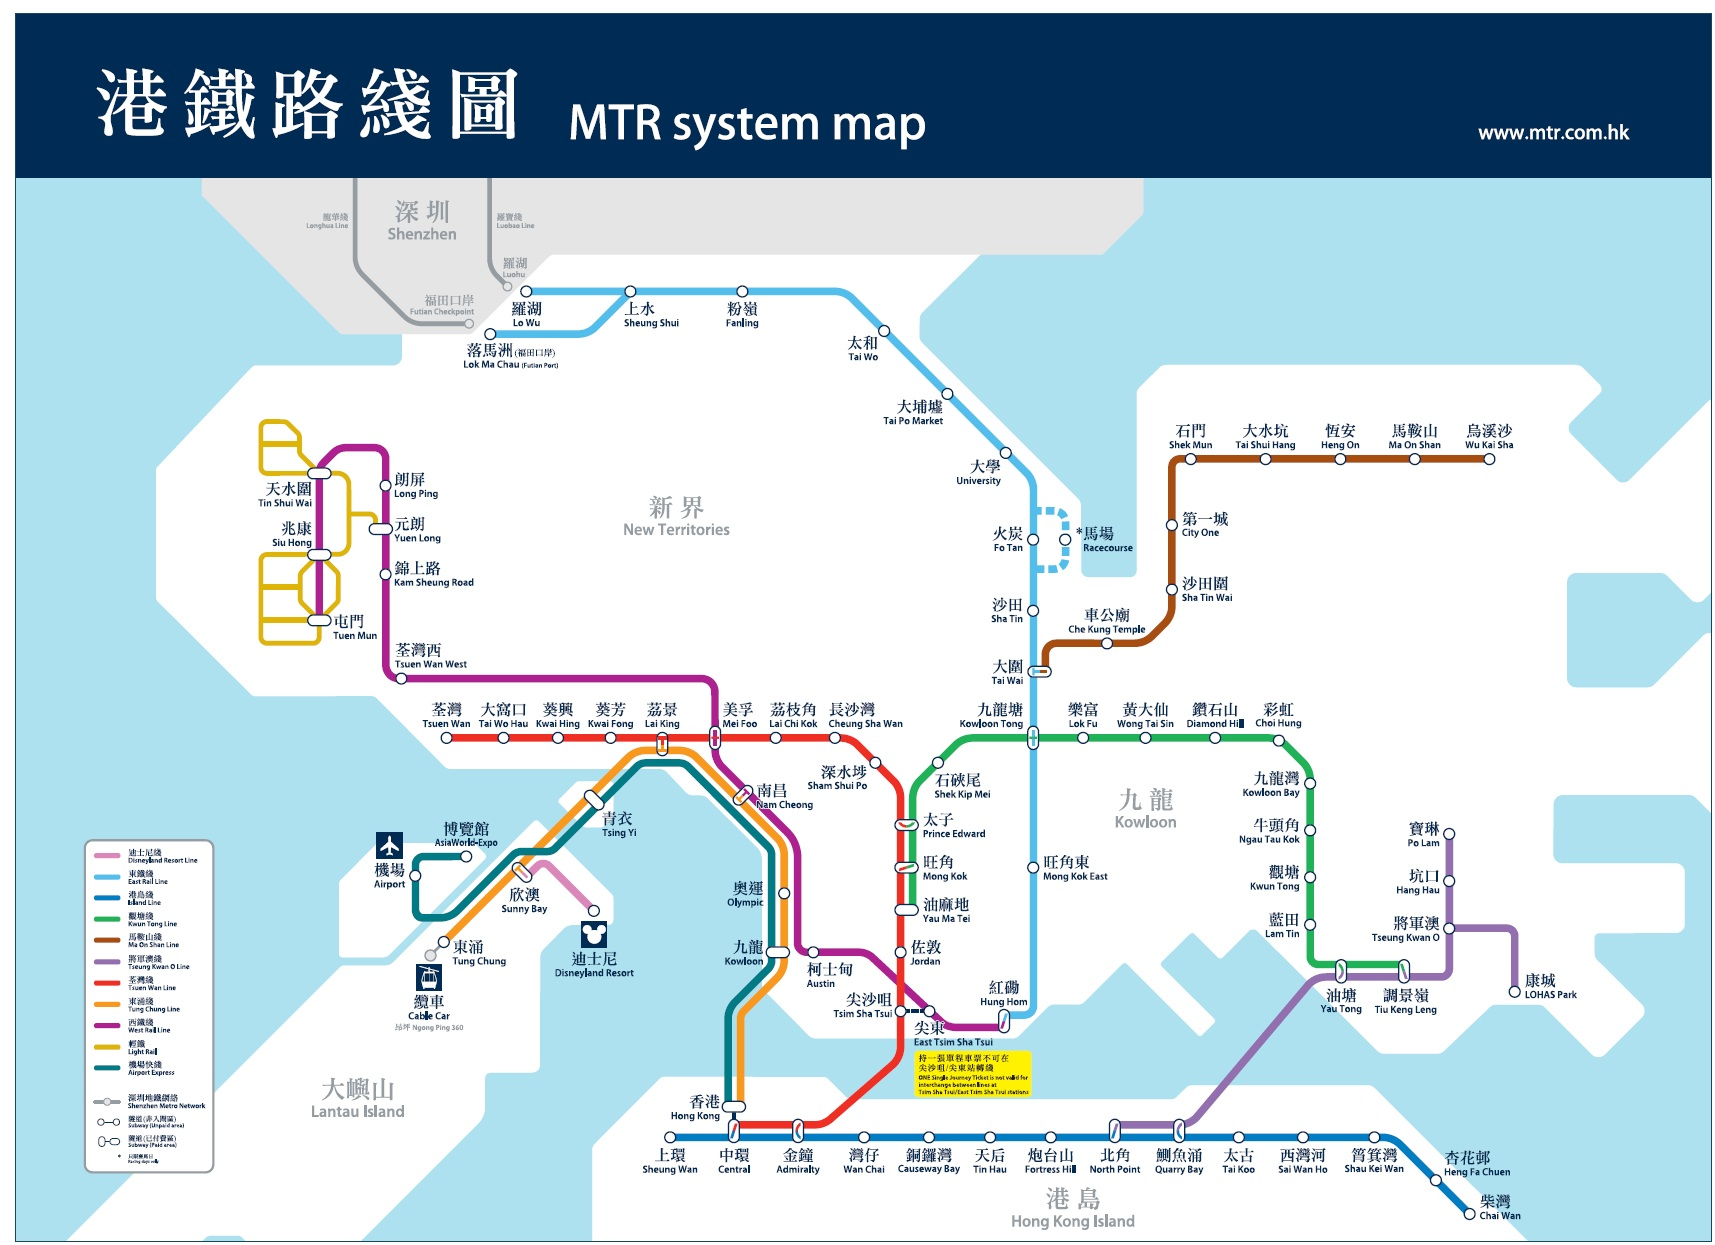 Hongkong MTR System Map Personal Blog of Mario Xiao a Graphic